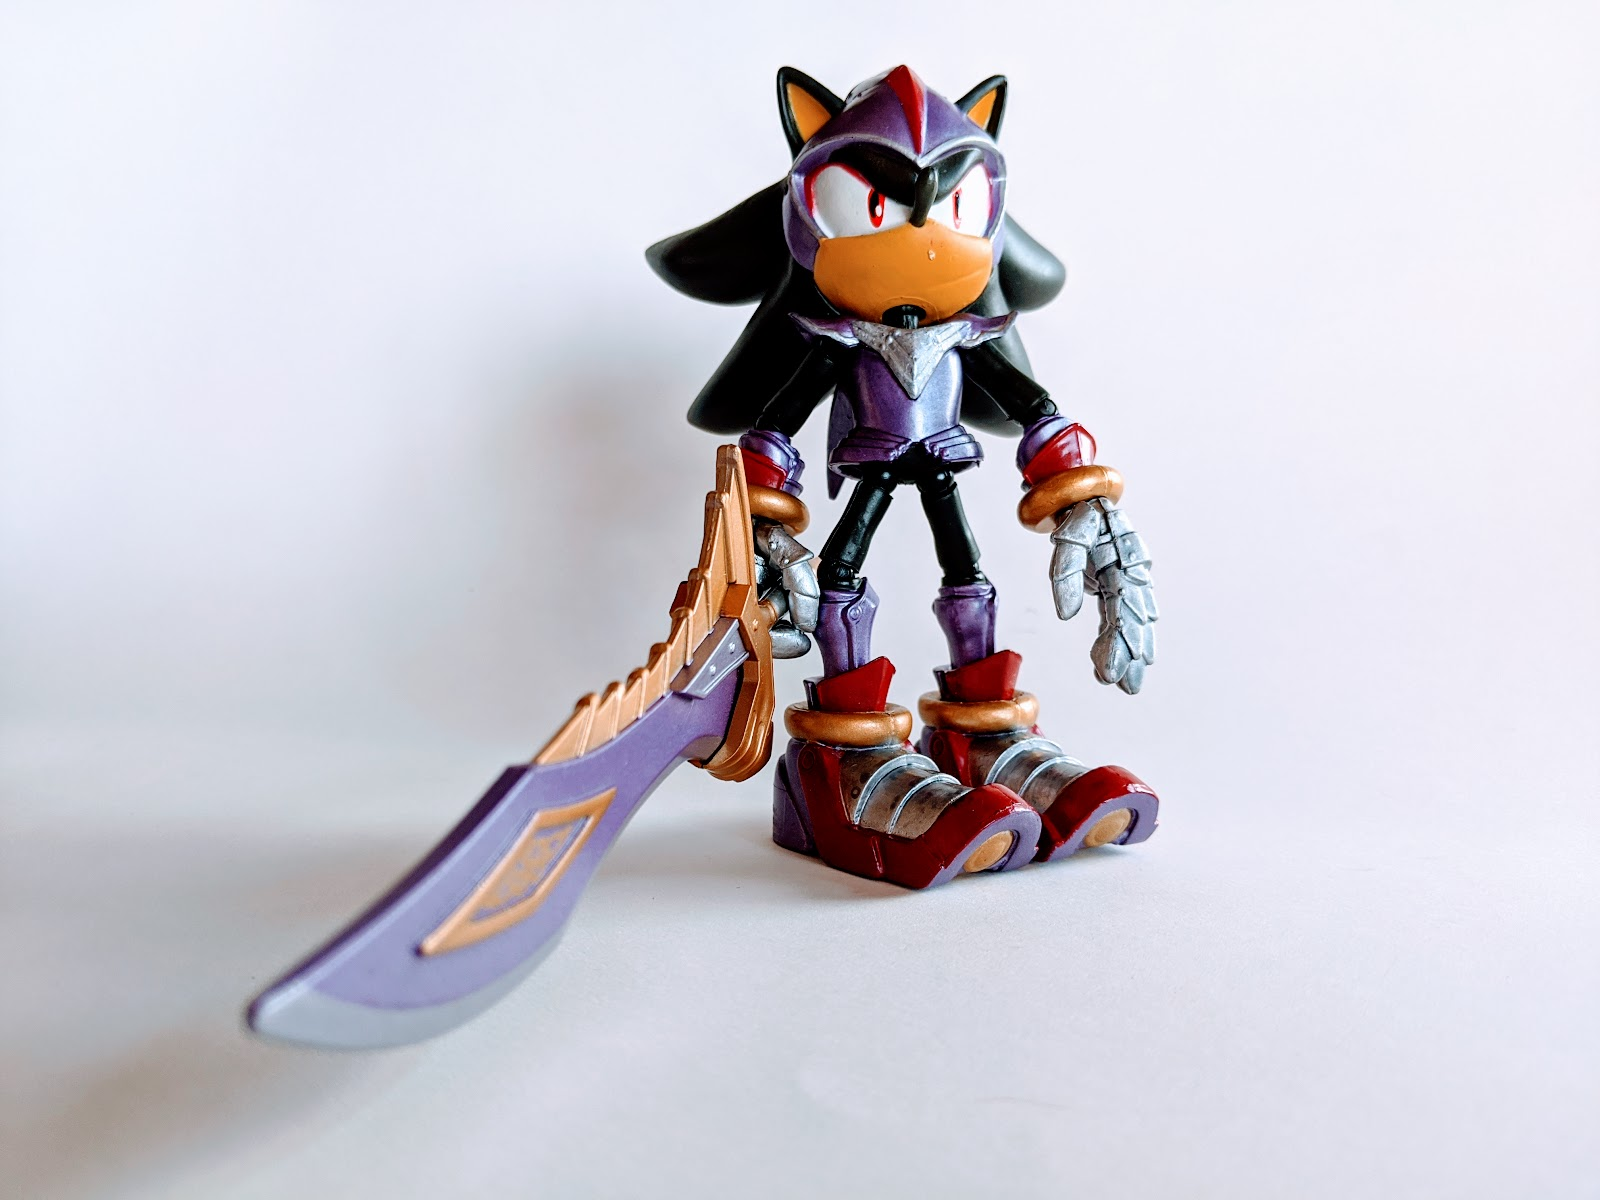 picture of sonic action figure on white background